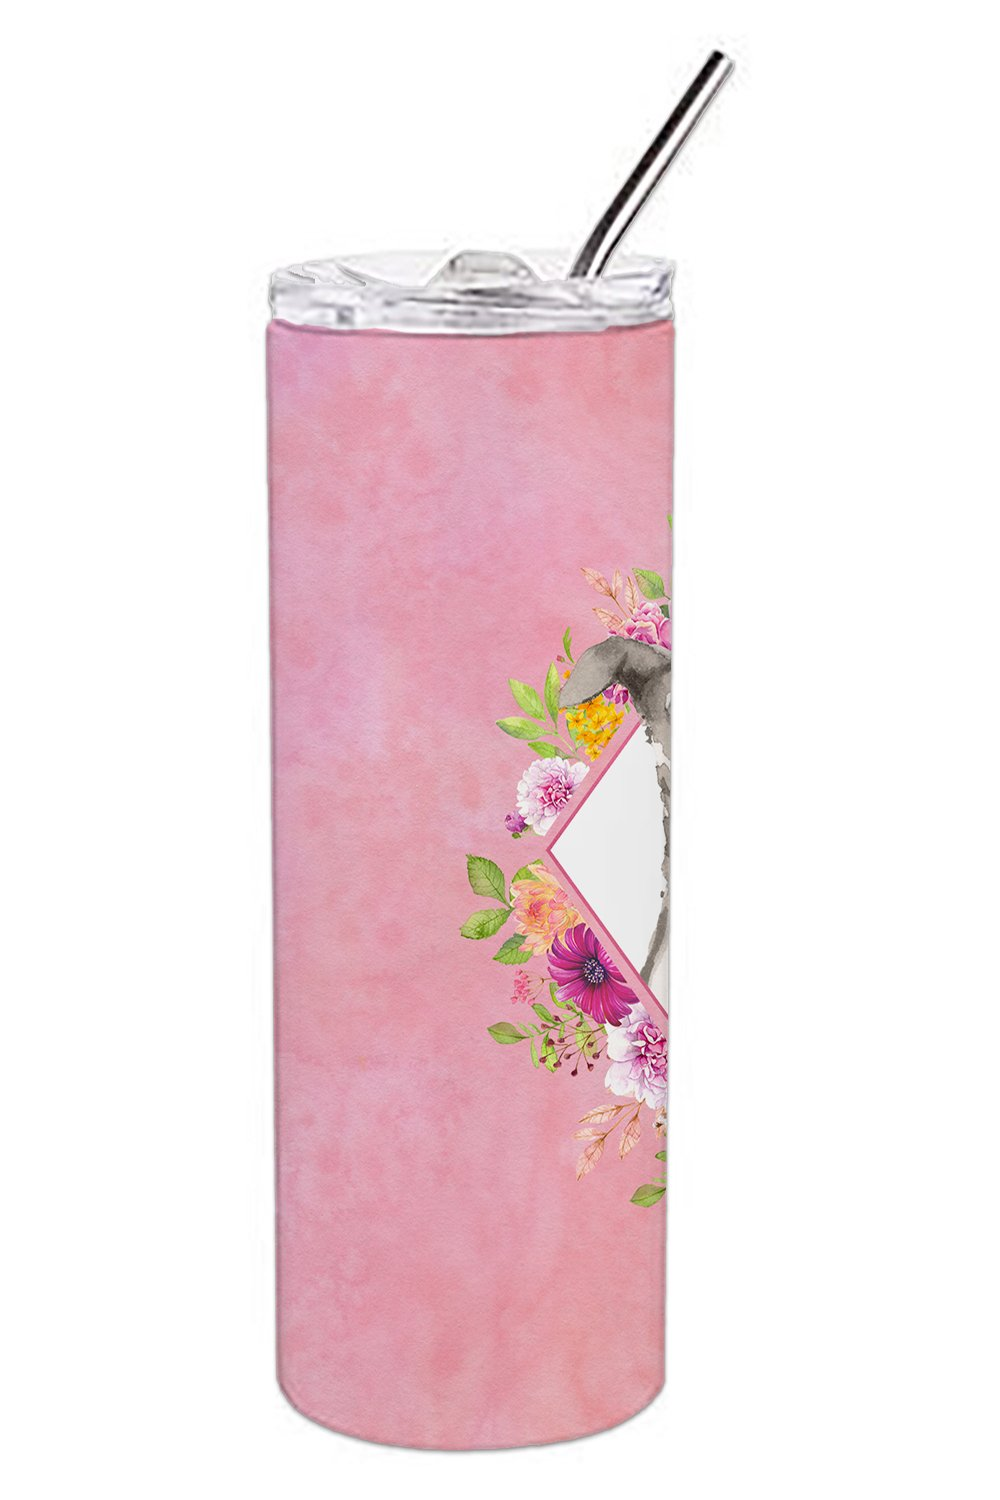 Italian Greyhound Pink Flowers Double Walled Stainless Steel 20 oz Skinny Tumbler CK4230TBL20 by Caroline's Treasures